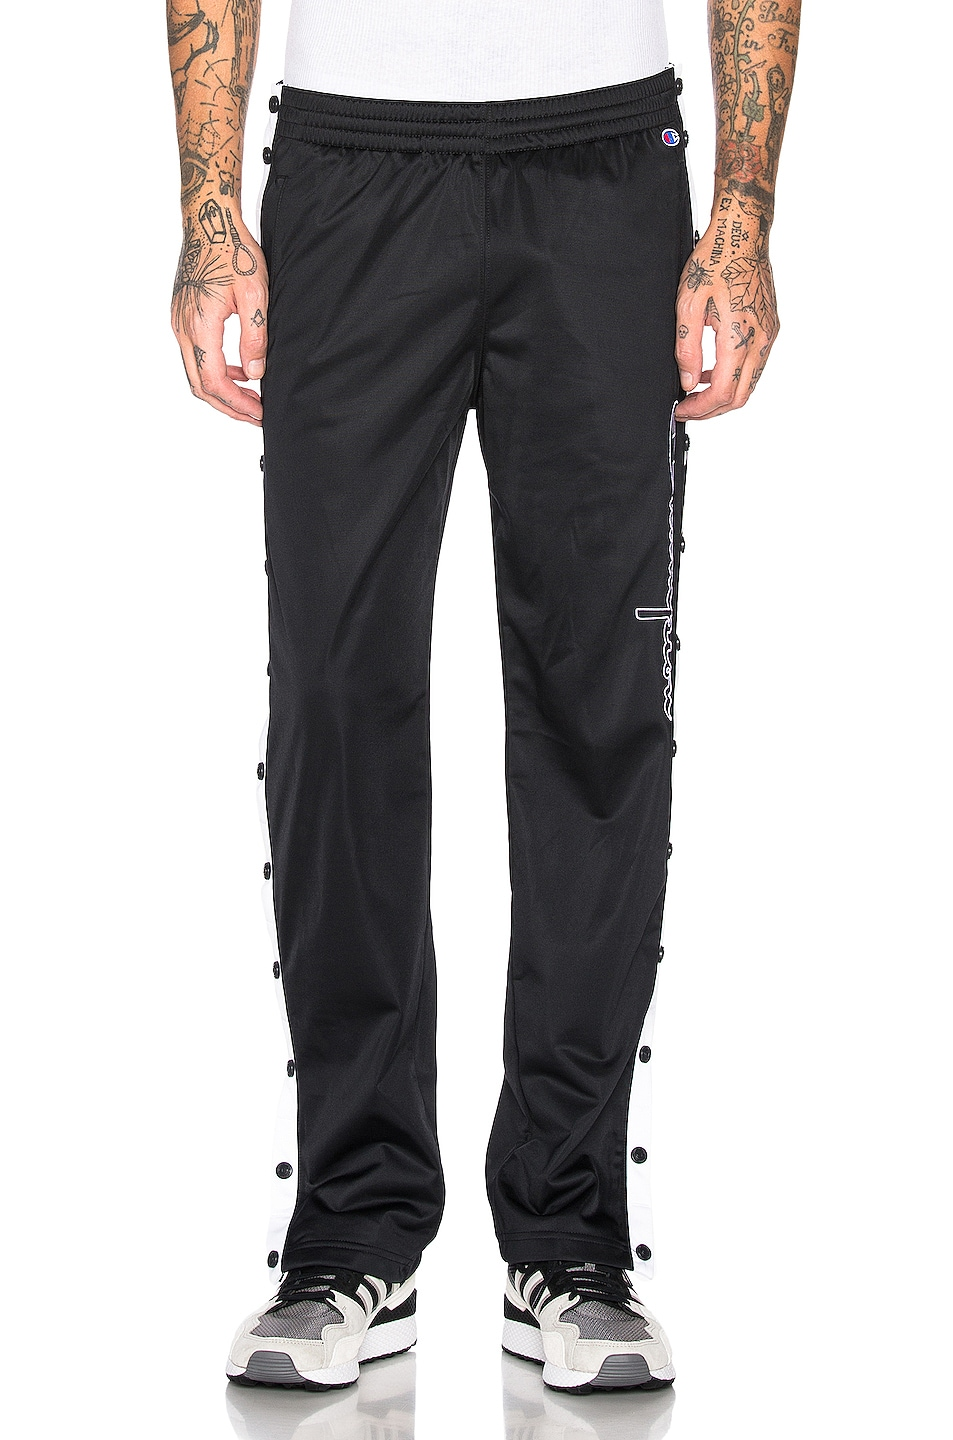 Image 2 of Champion Reverse Weave Champion Pants in Black & White